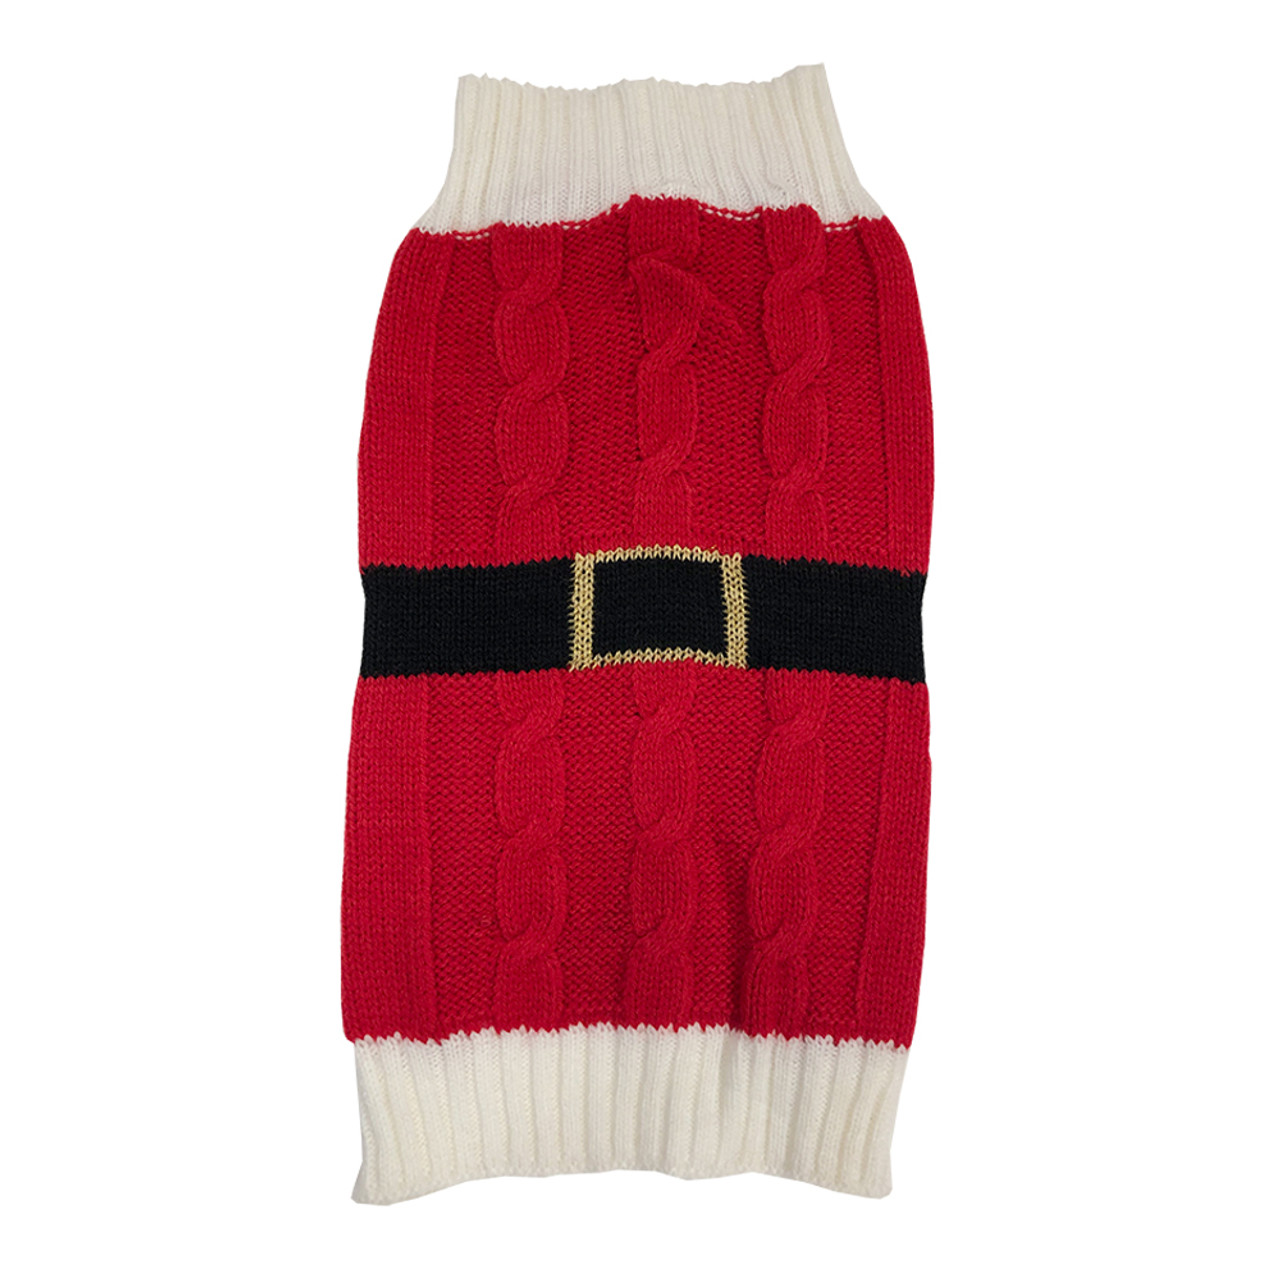 SimplyDog Red Cable Knit Santa Belt Dog Sweater